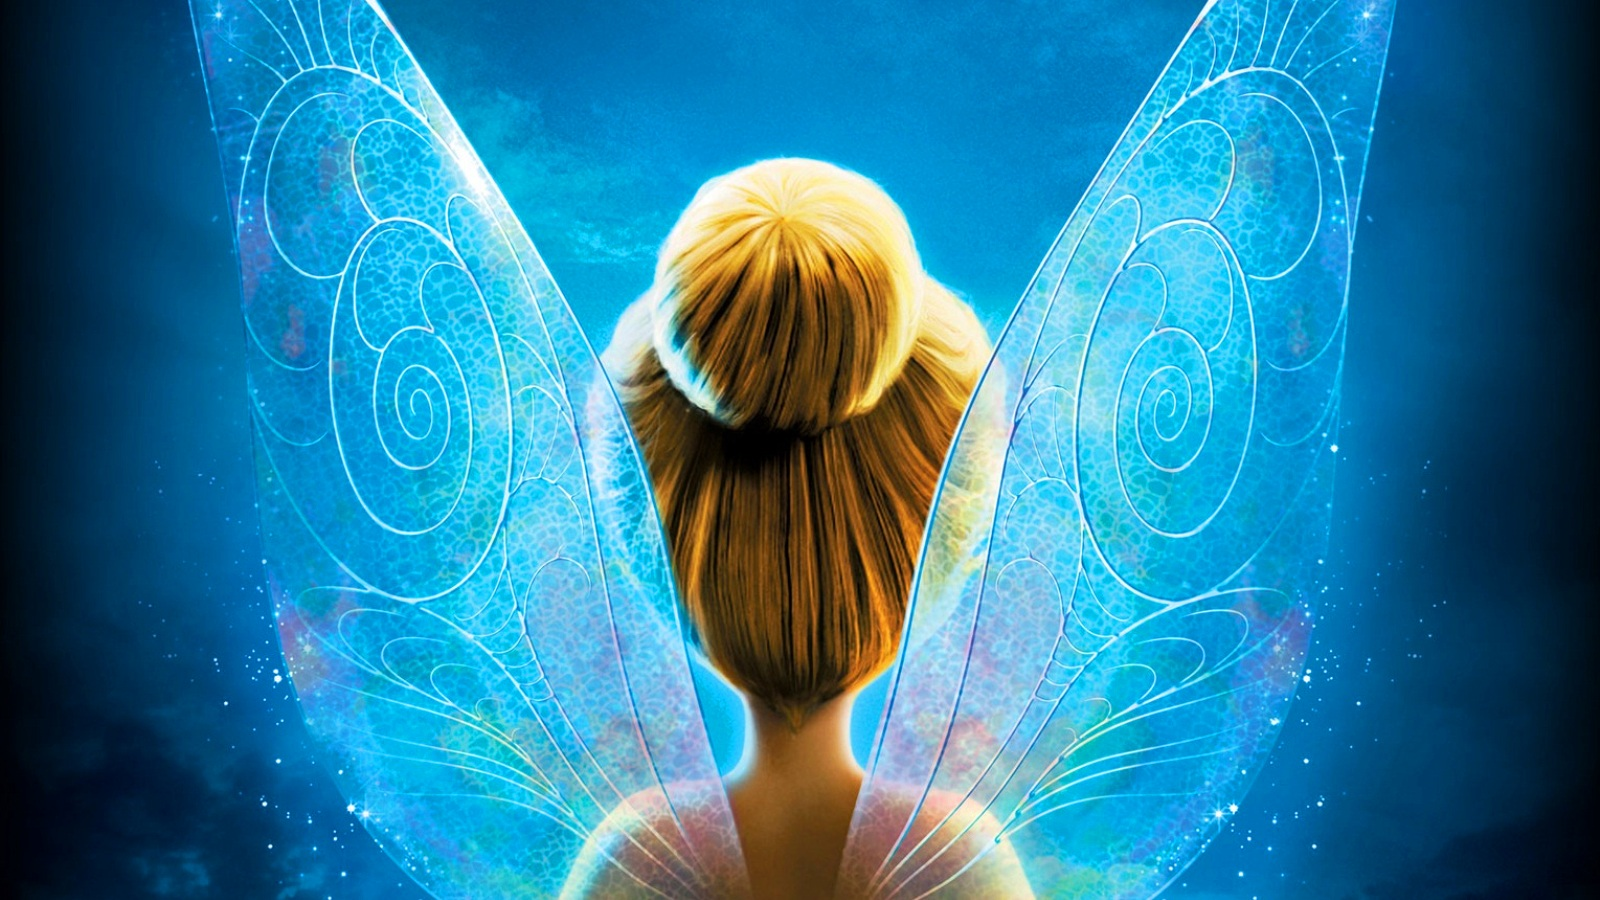 Best Tinkerbell Wallpaper iPhone